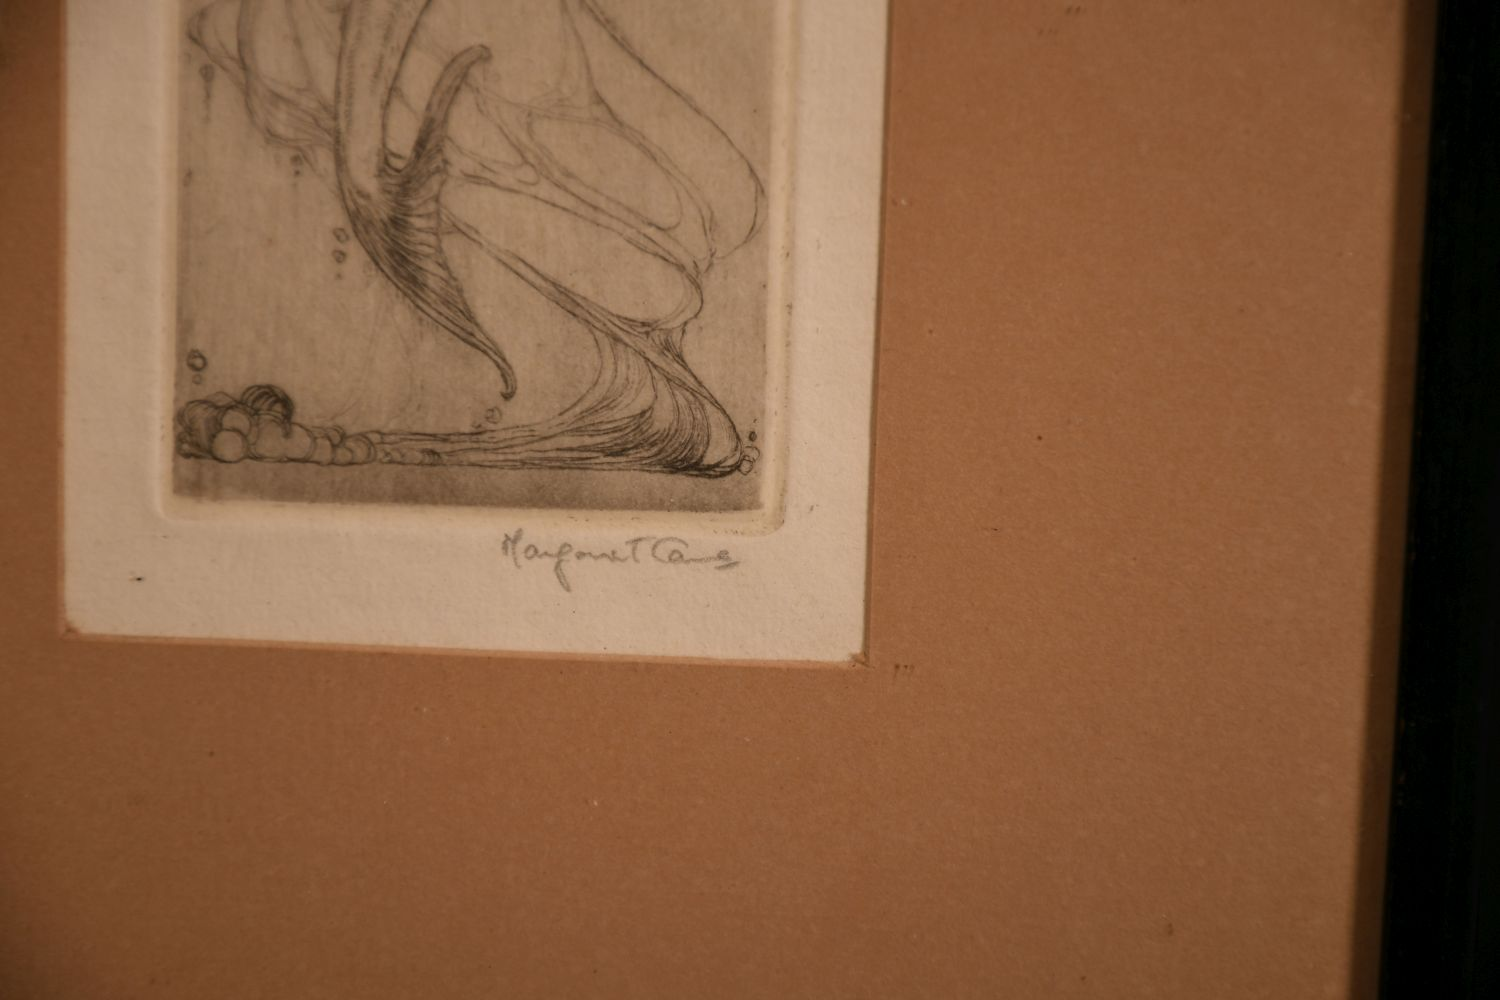 """An art nouveau etching of a mermaid with a fish, indistinctly signed in pencil, 7.5"""" x 2.5"""". - Image 3 of 4"""